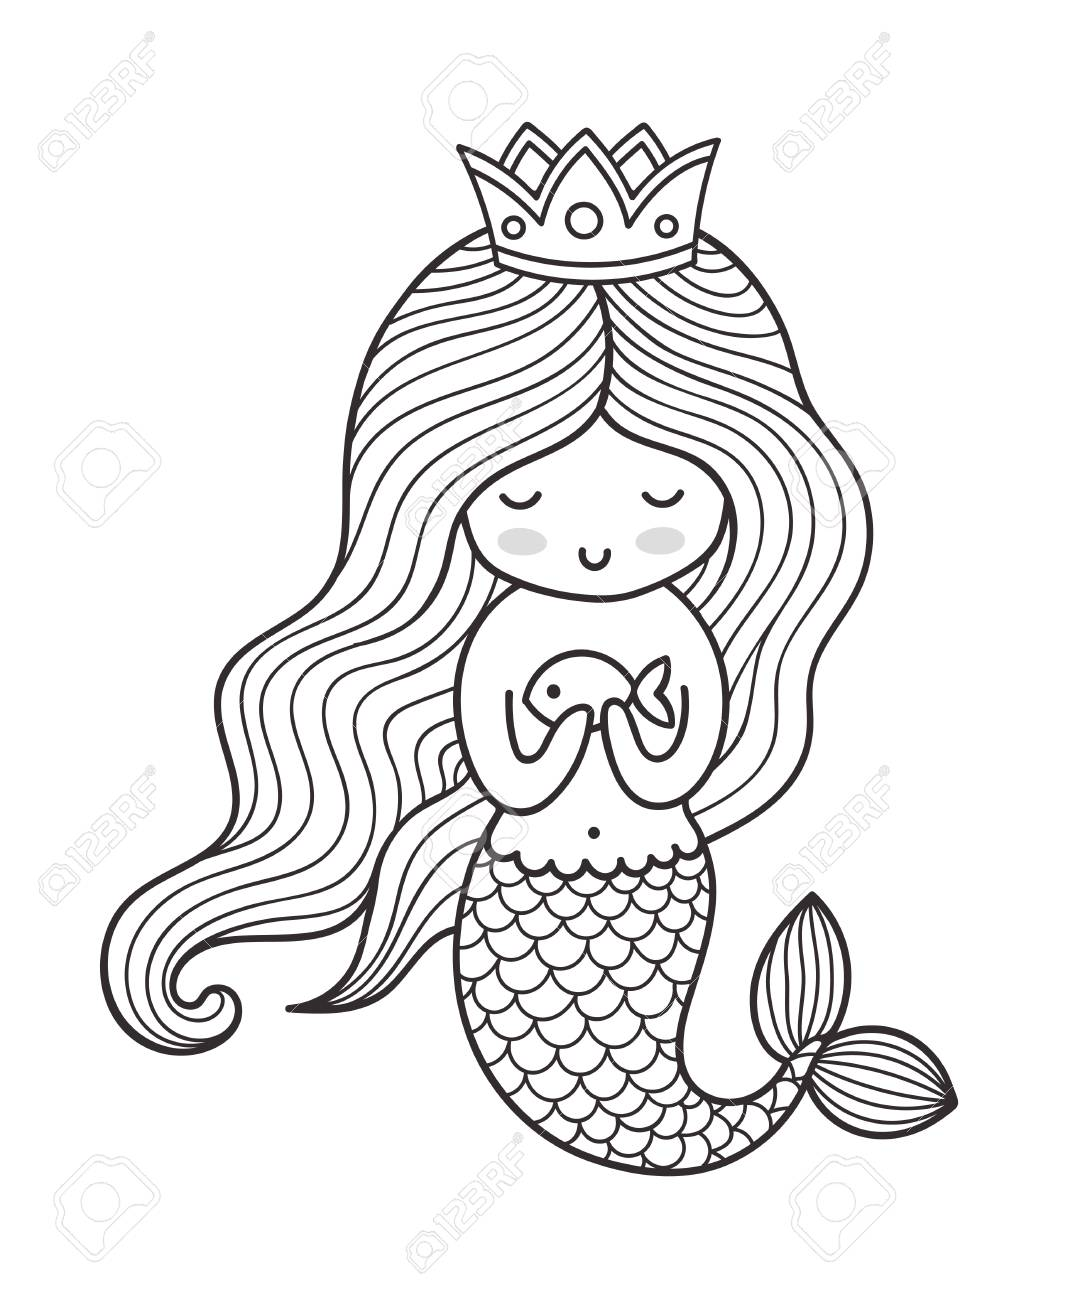 Mermaid With Long Curly Hair And Crown Vector Outline Illustration